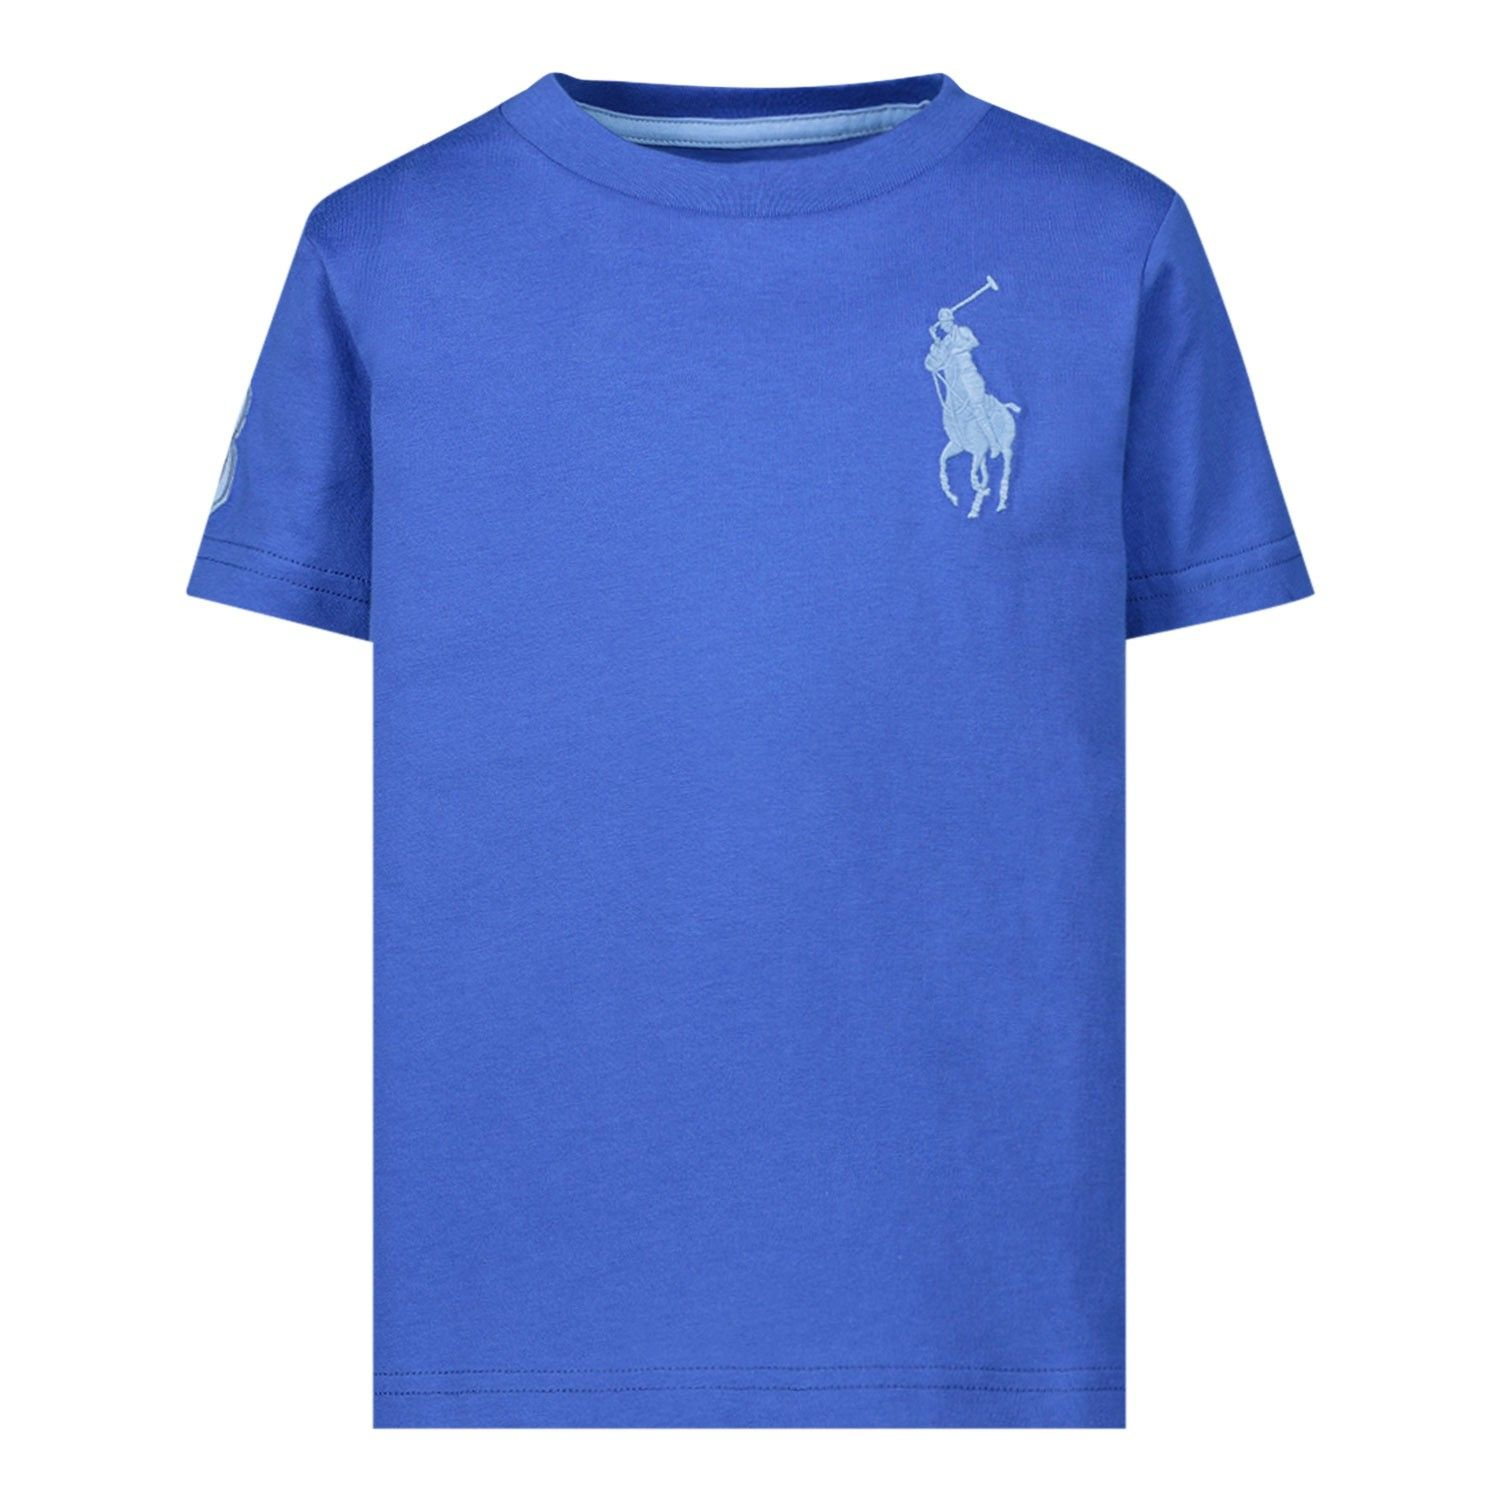 Picture of Ralph Lauren 770177 kids t-shirt blue